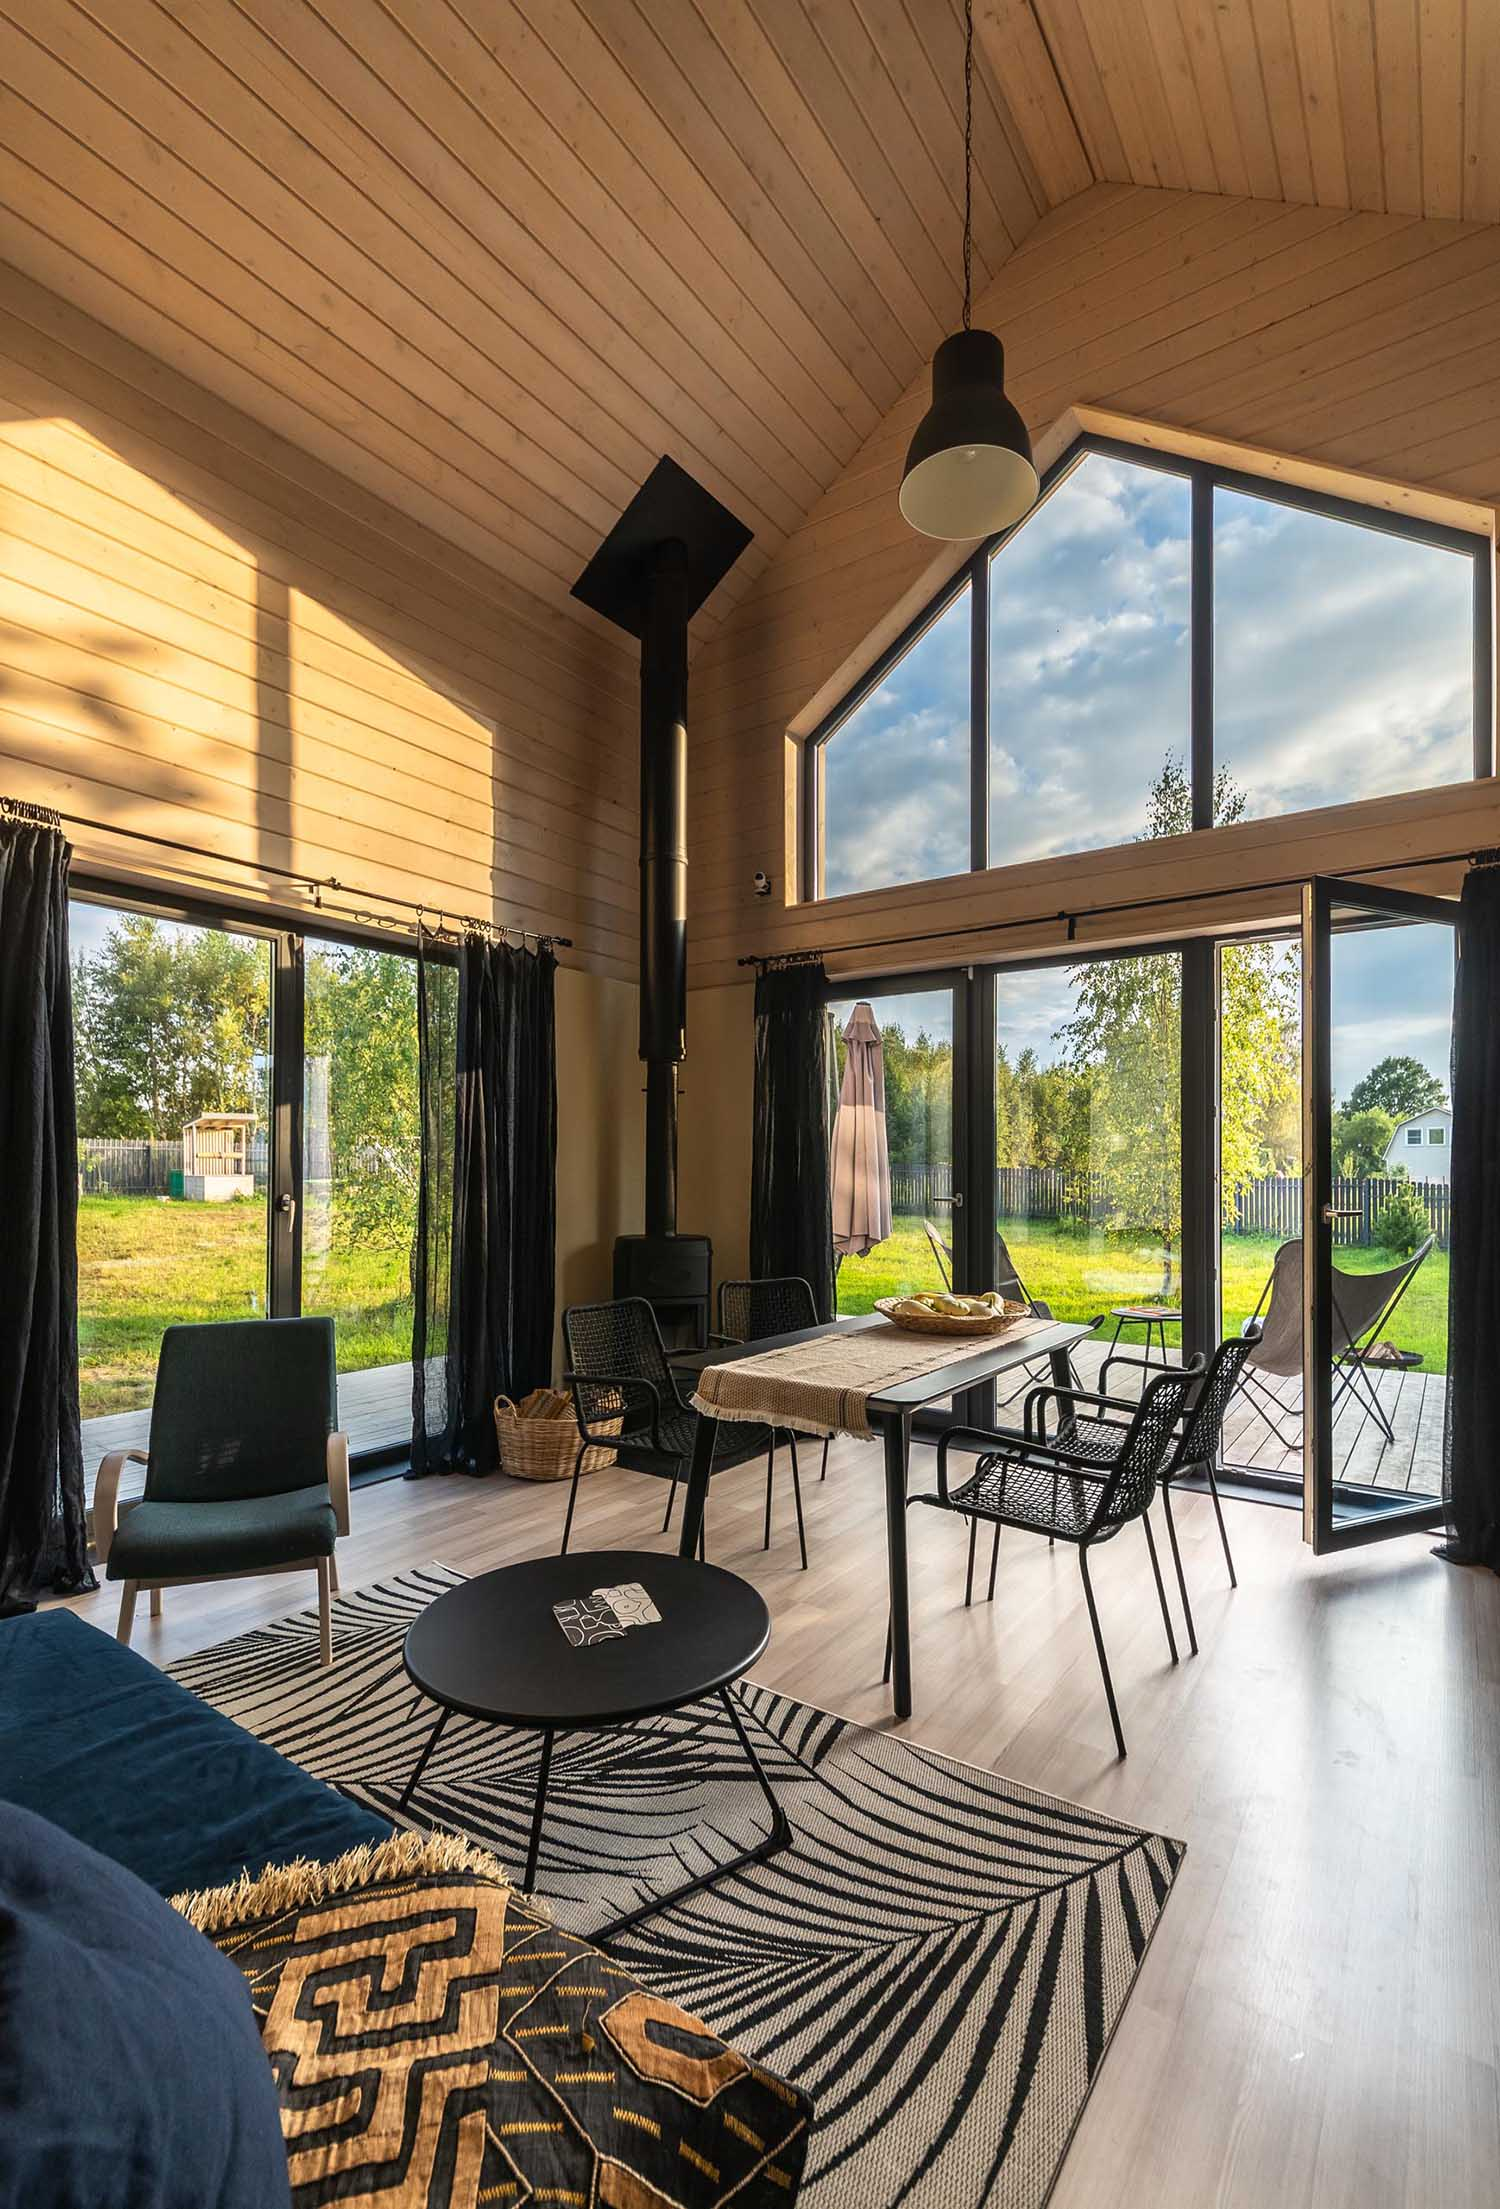 A modern barn-inspired living room with tongue and groove wood siding and black accents, like a fireplace, the curtains, and furniture.